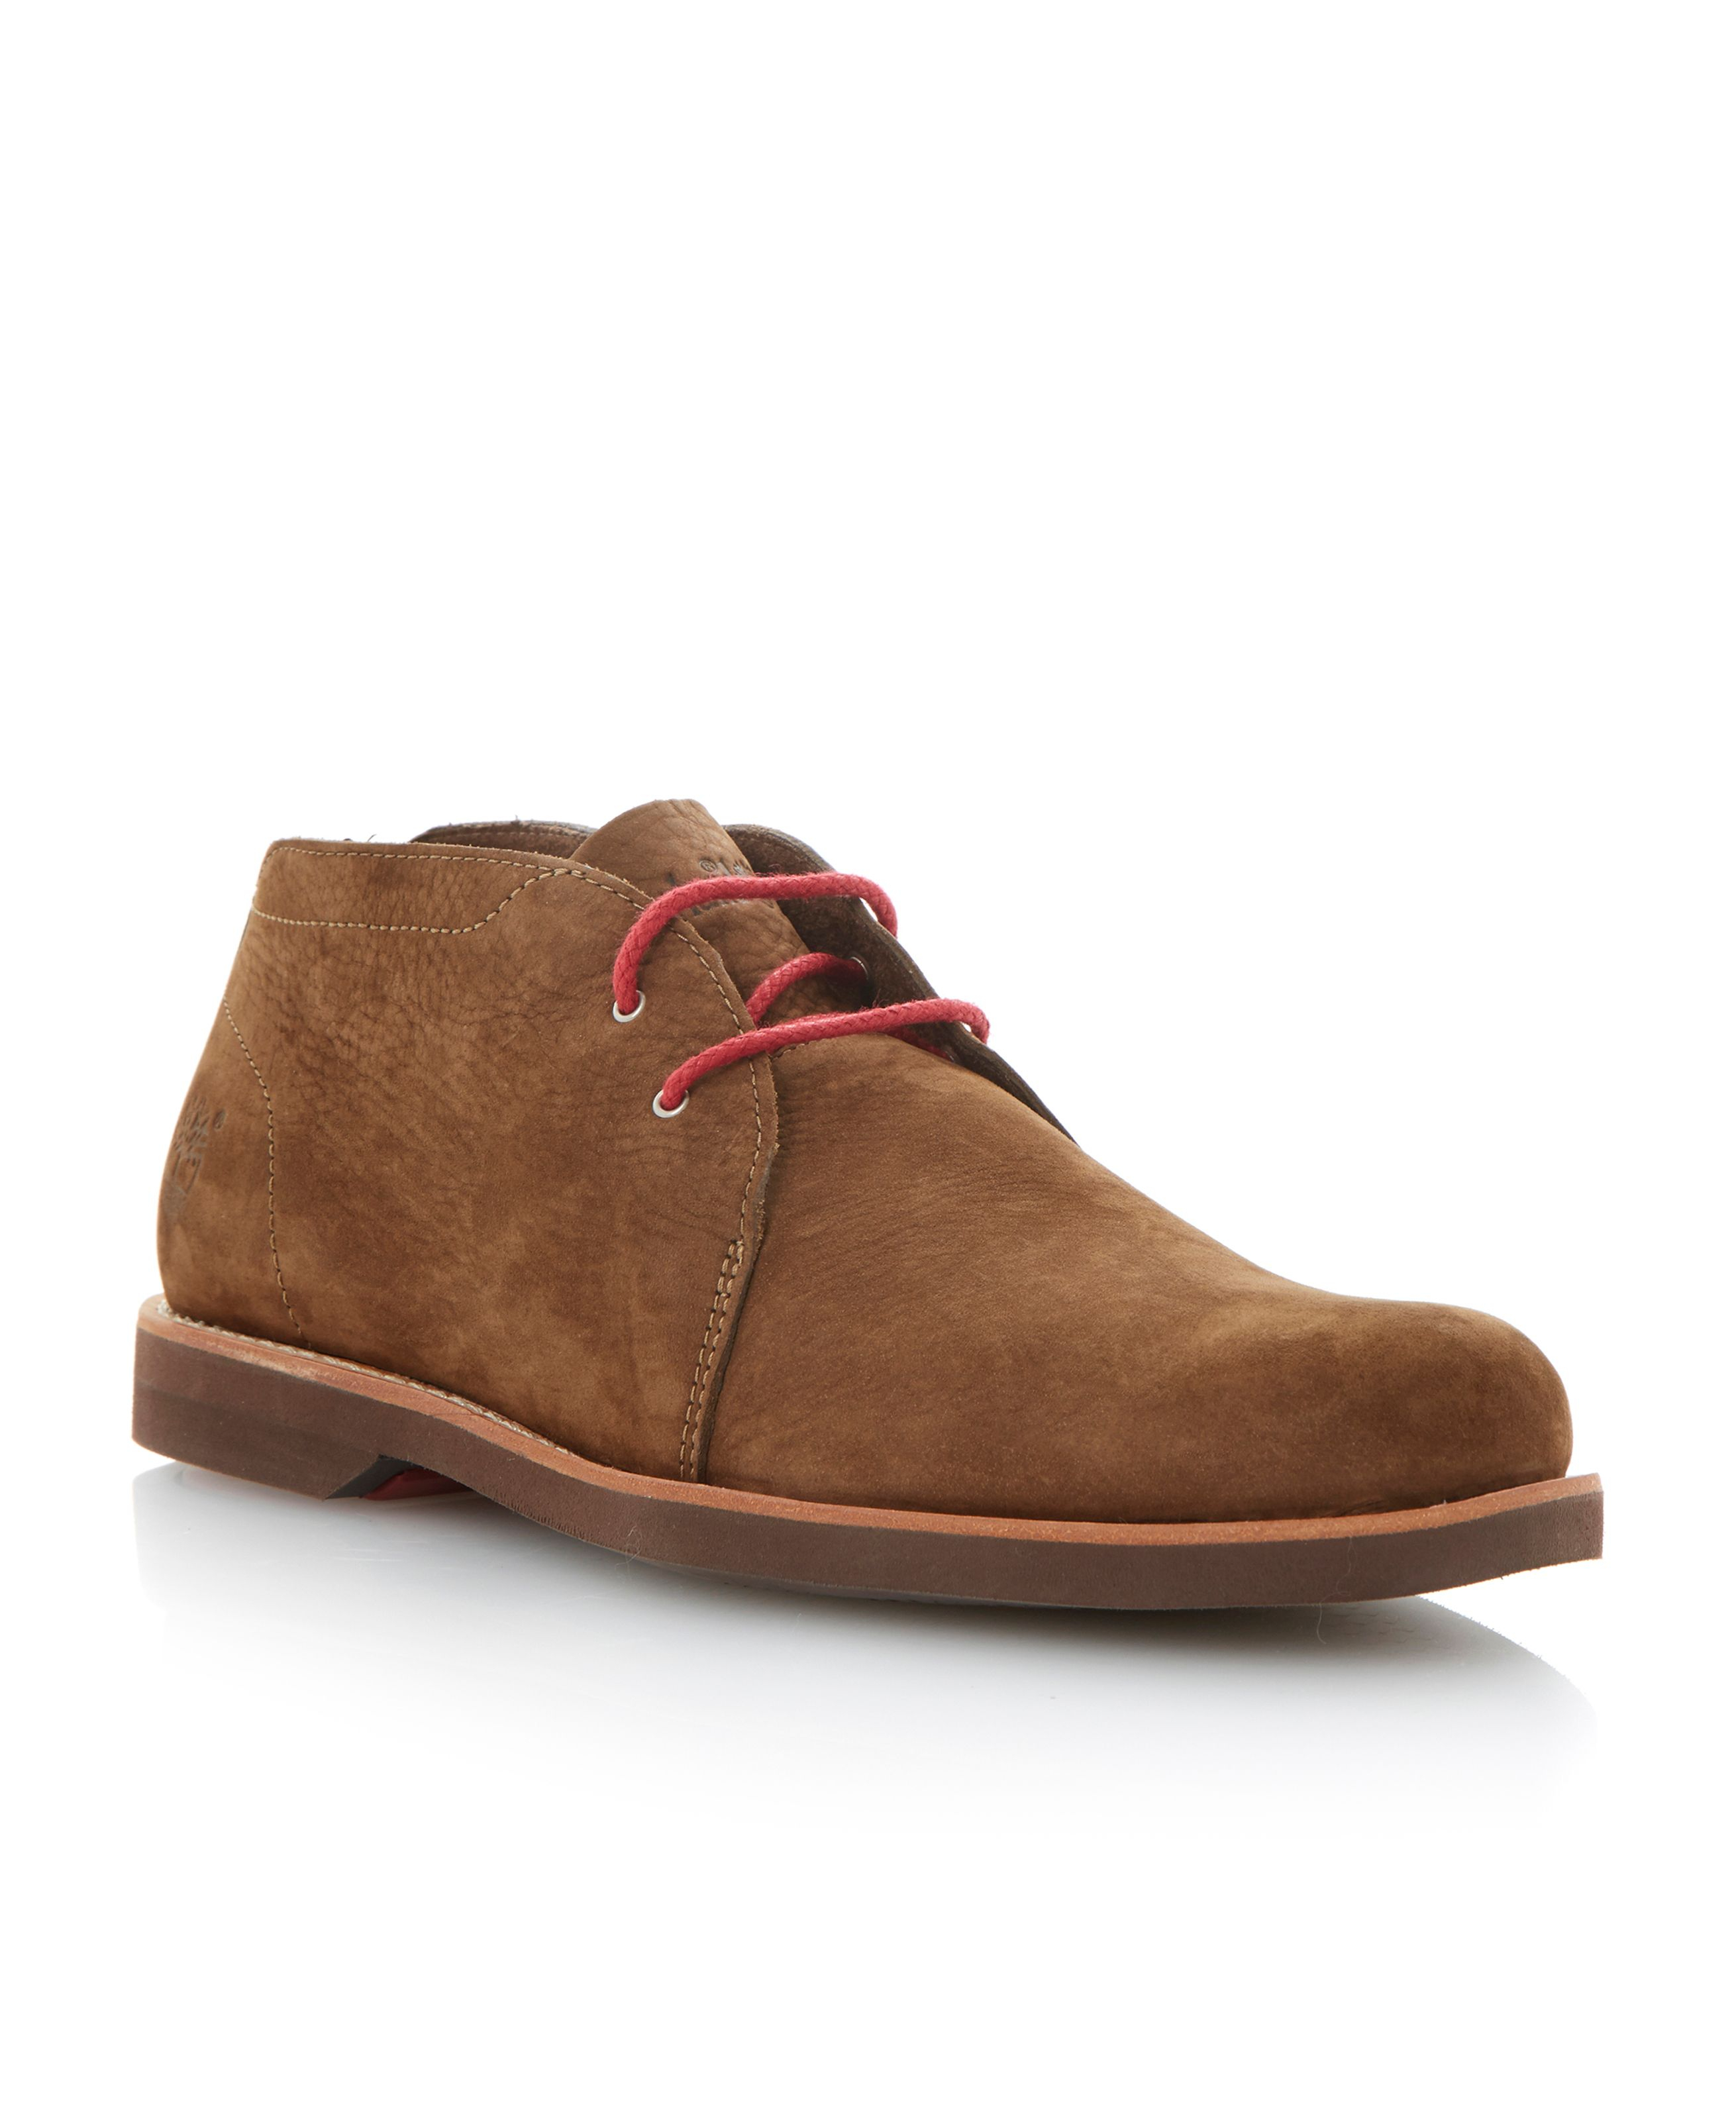 timberland lace up 2 eye chukka boots in brown for lyst